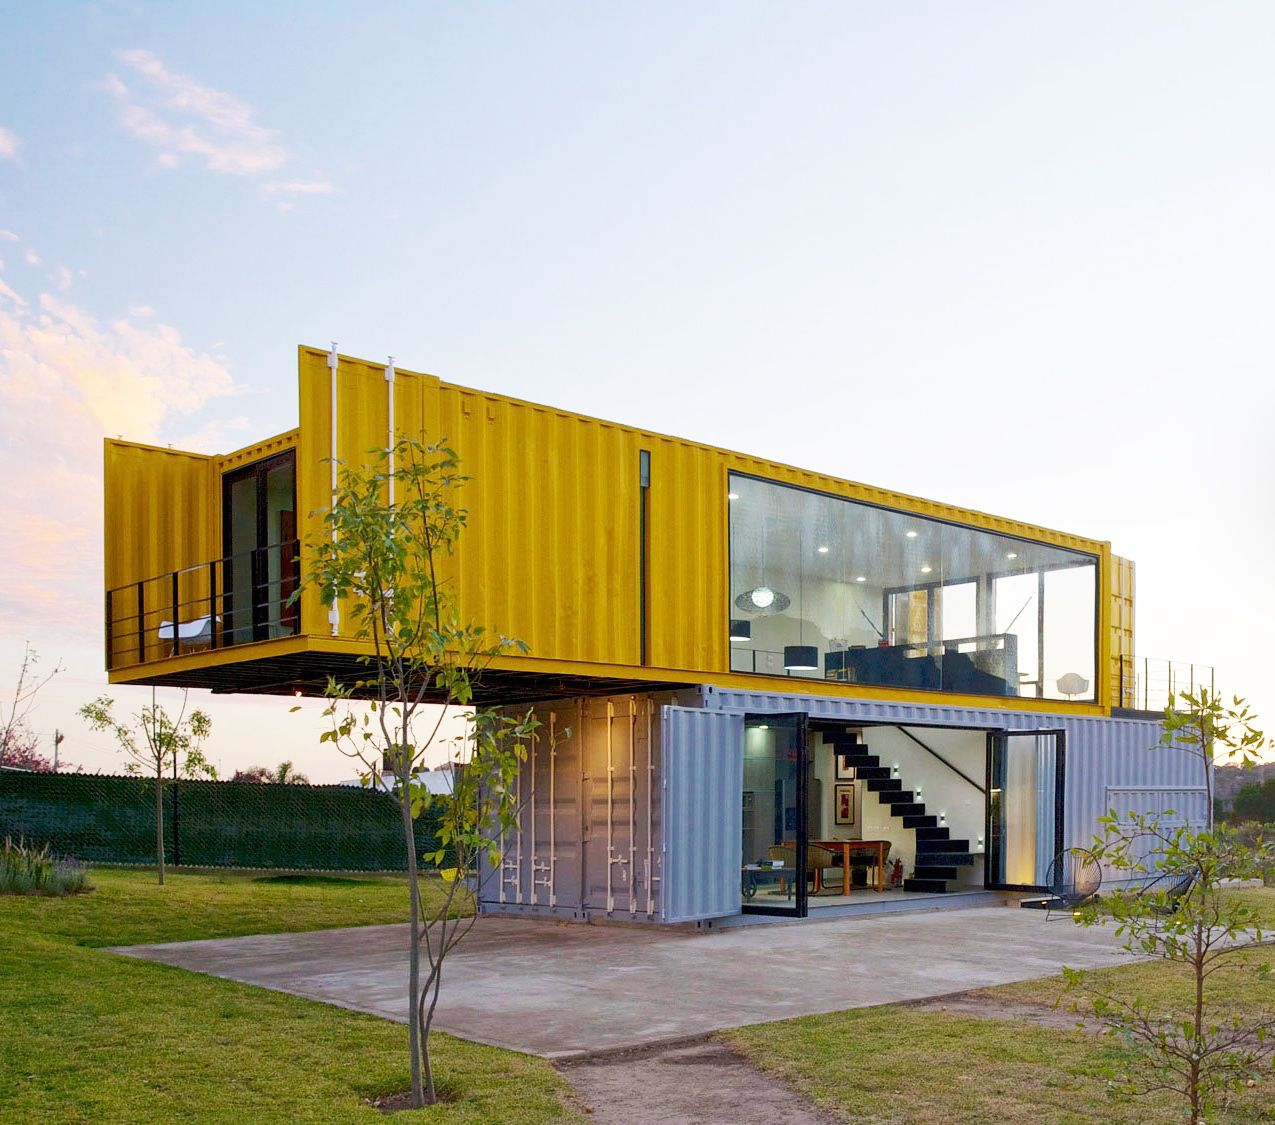 4 shipping containers prefab plus 1 for guests | remote